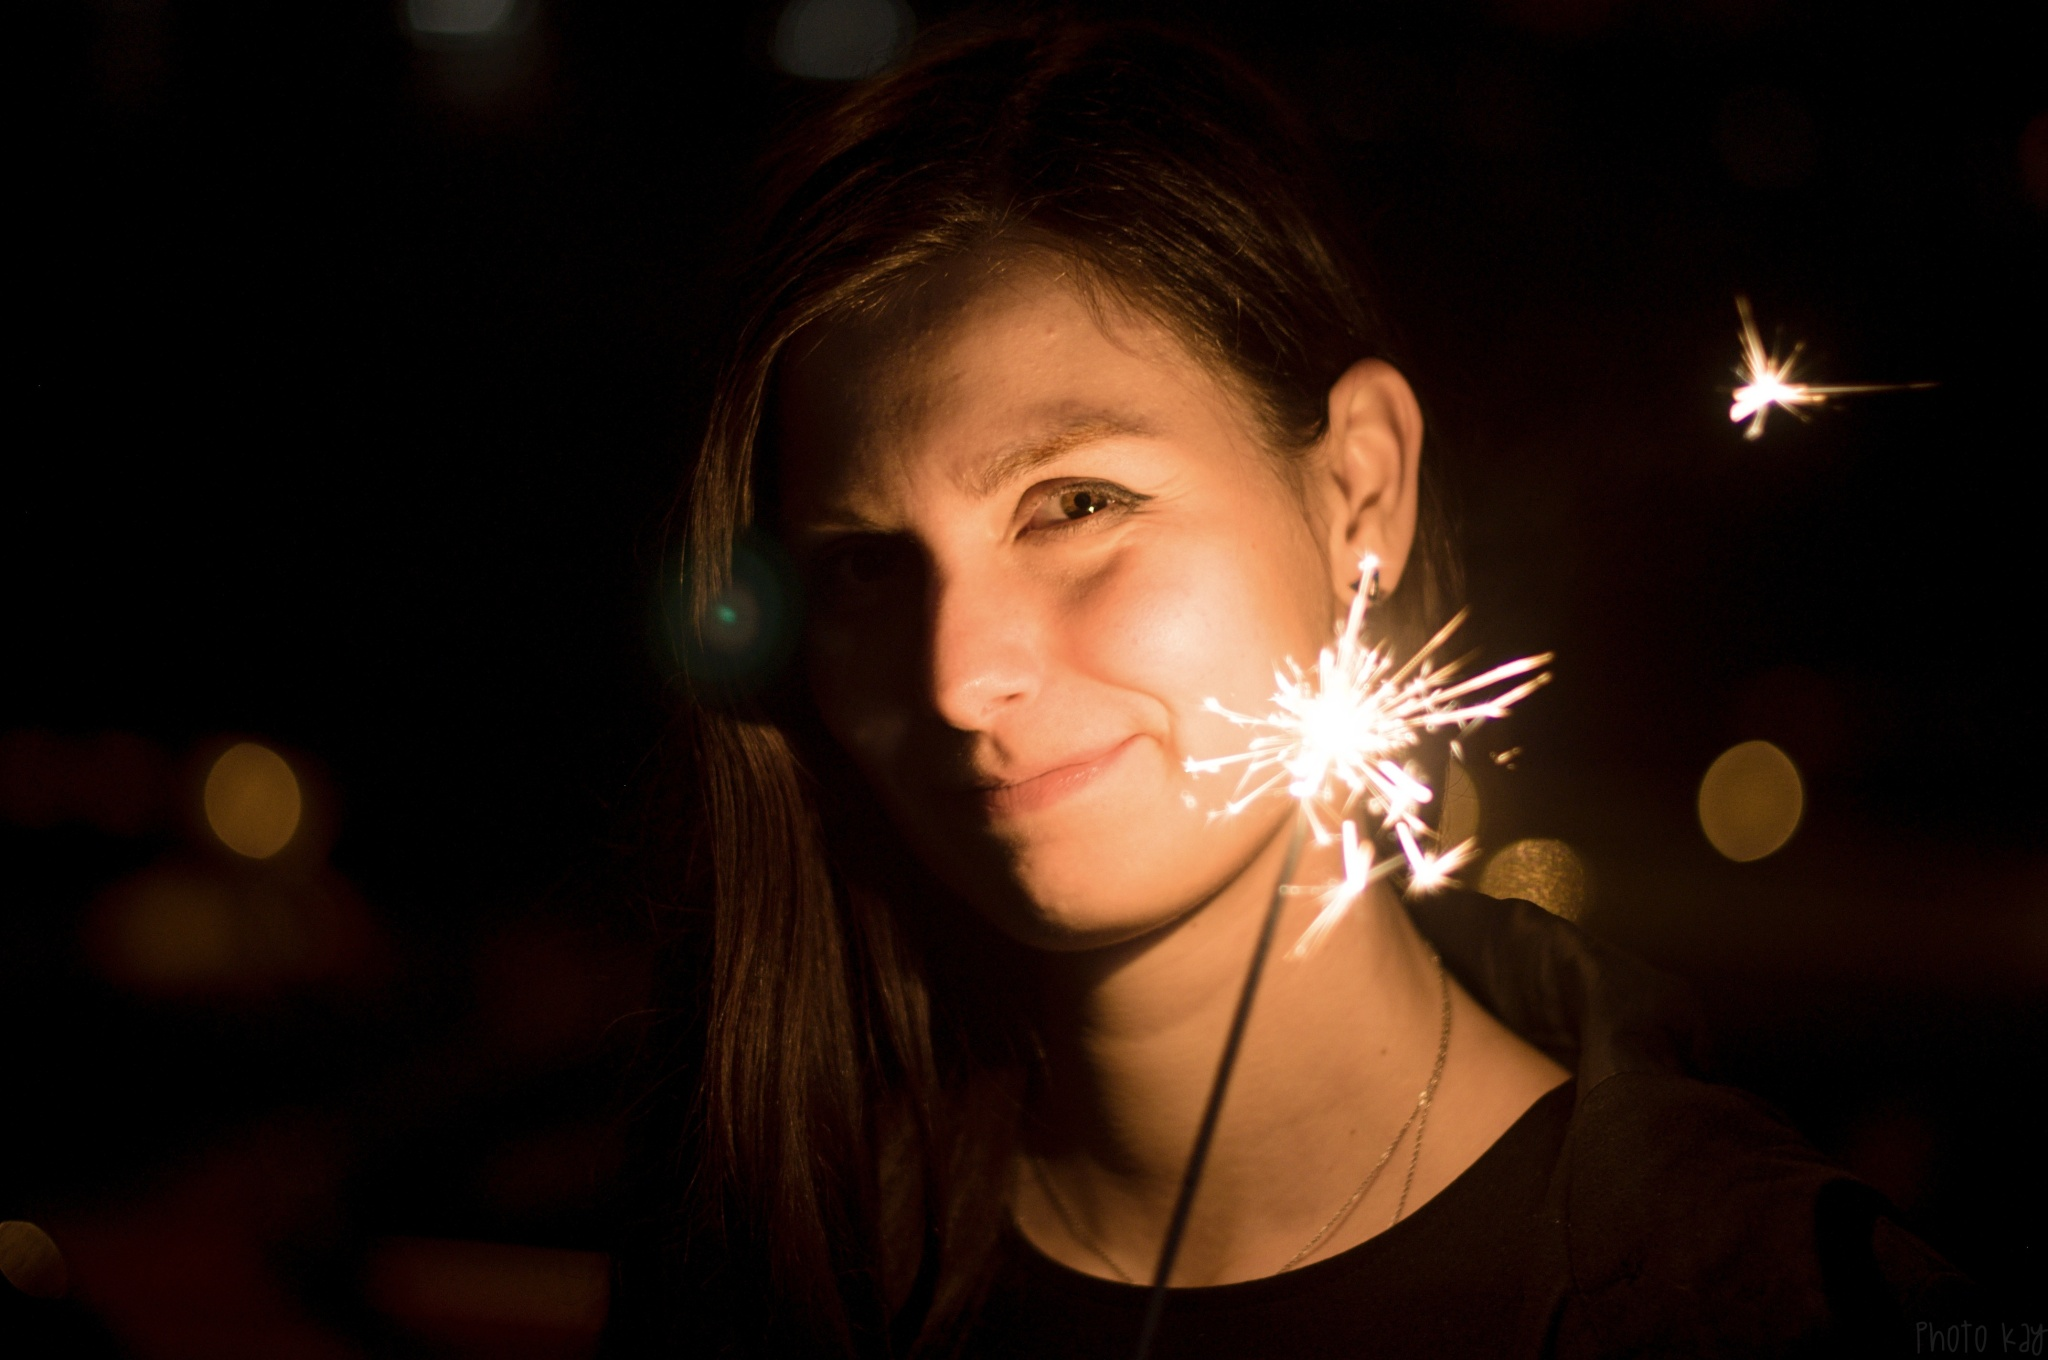 What to capture during winter – city lights, snow, and New Year's Eve